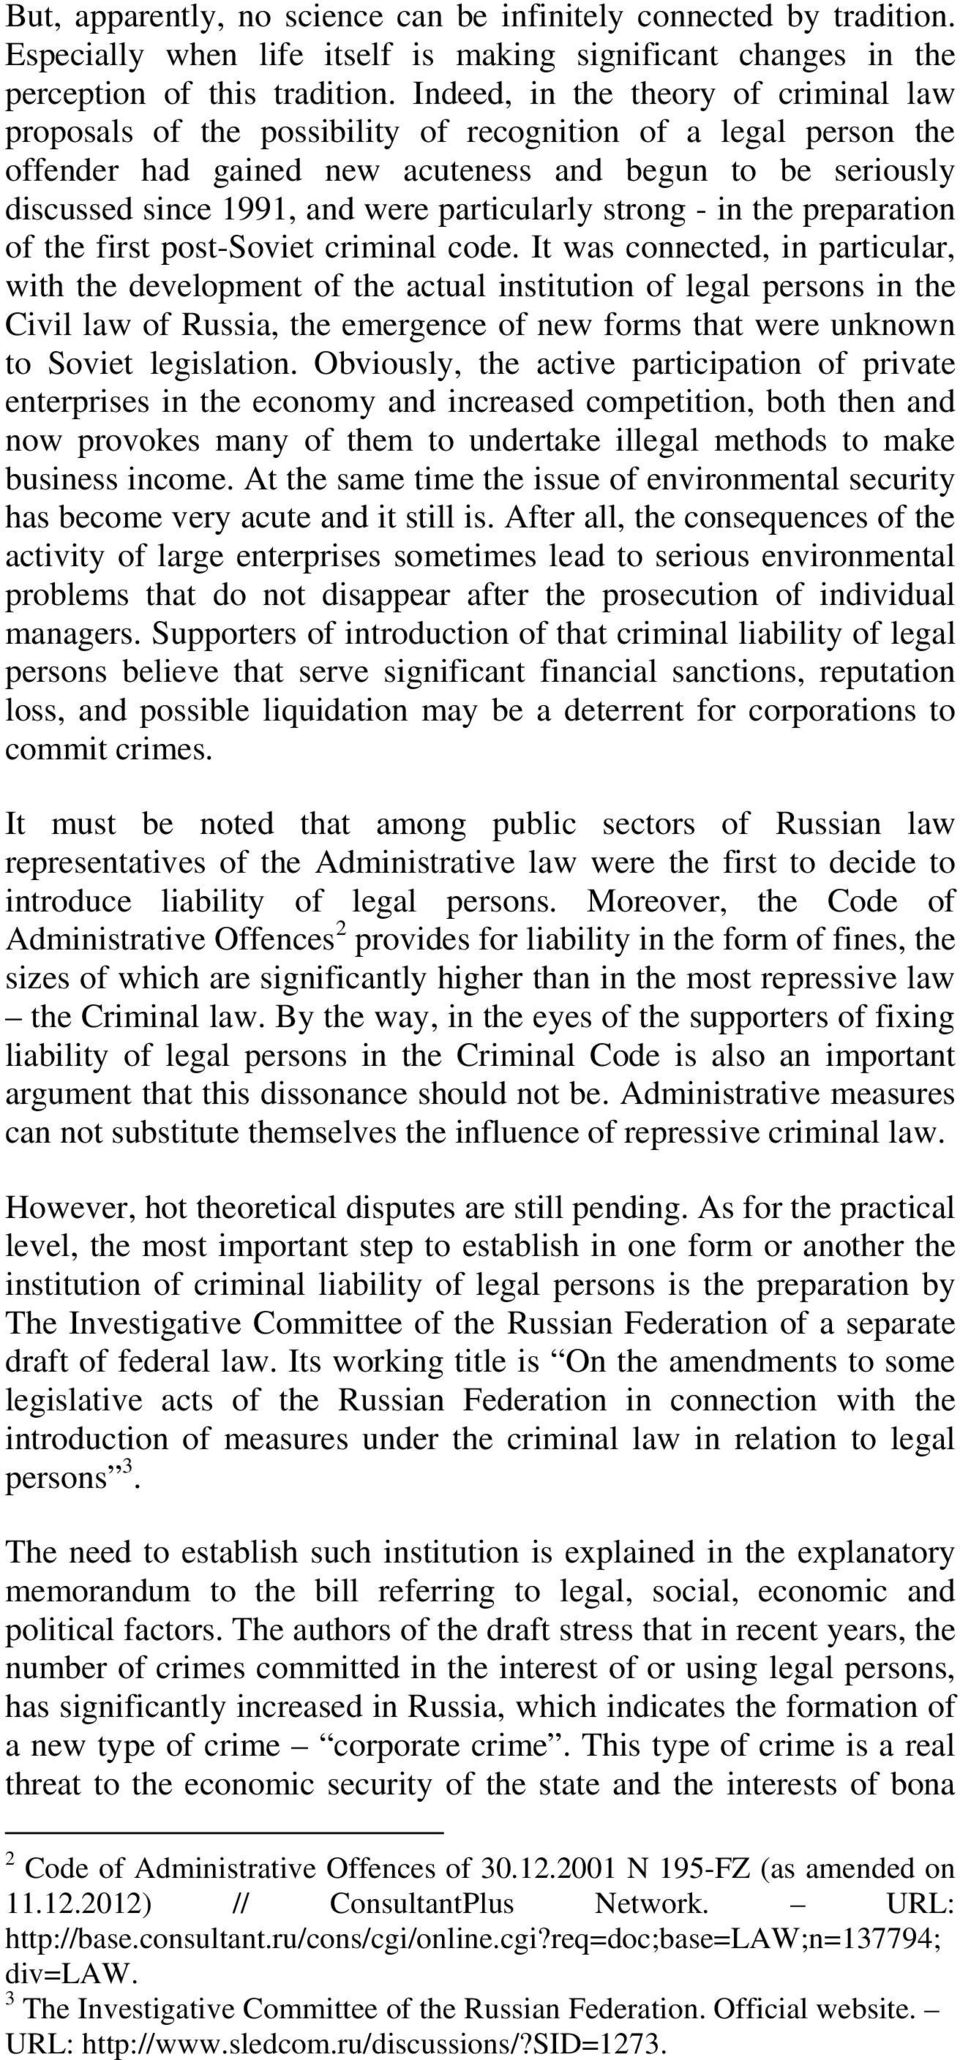 particularly strong - in the preparation of the first post-soviet criminal code.